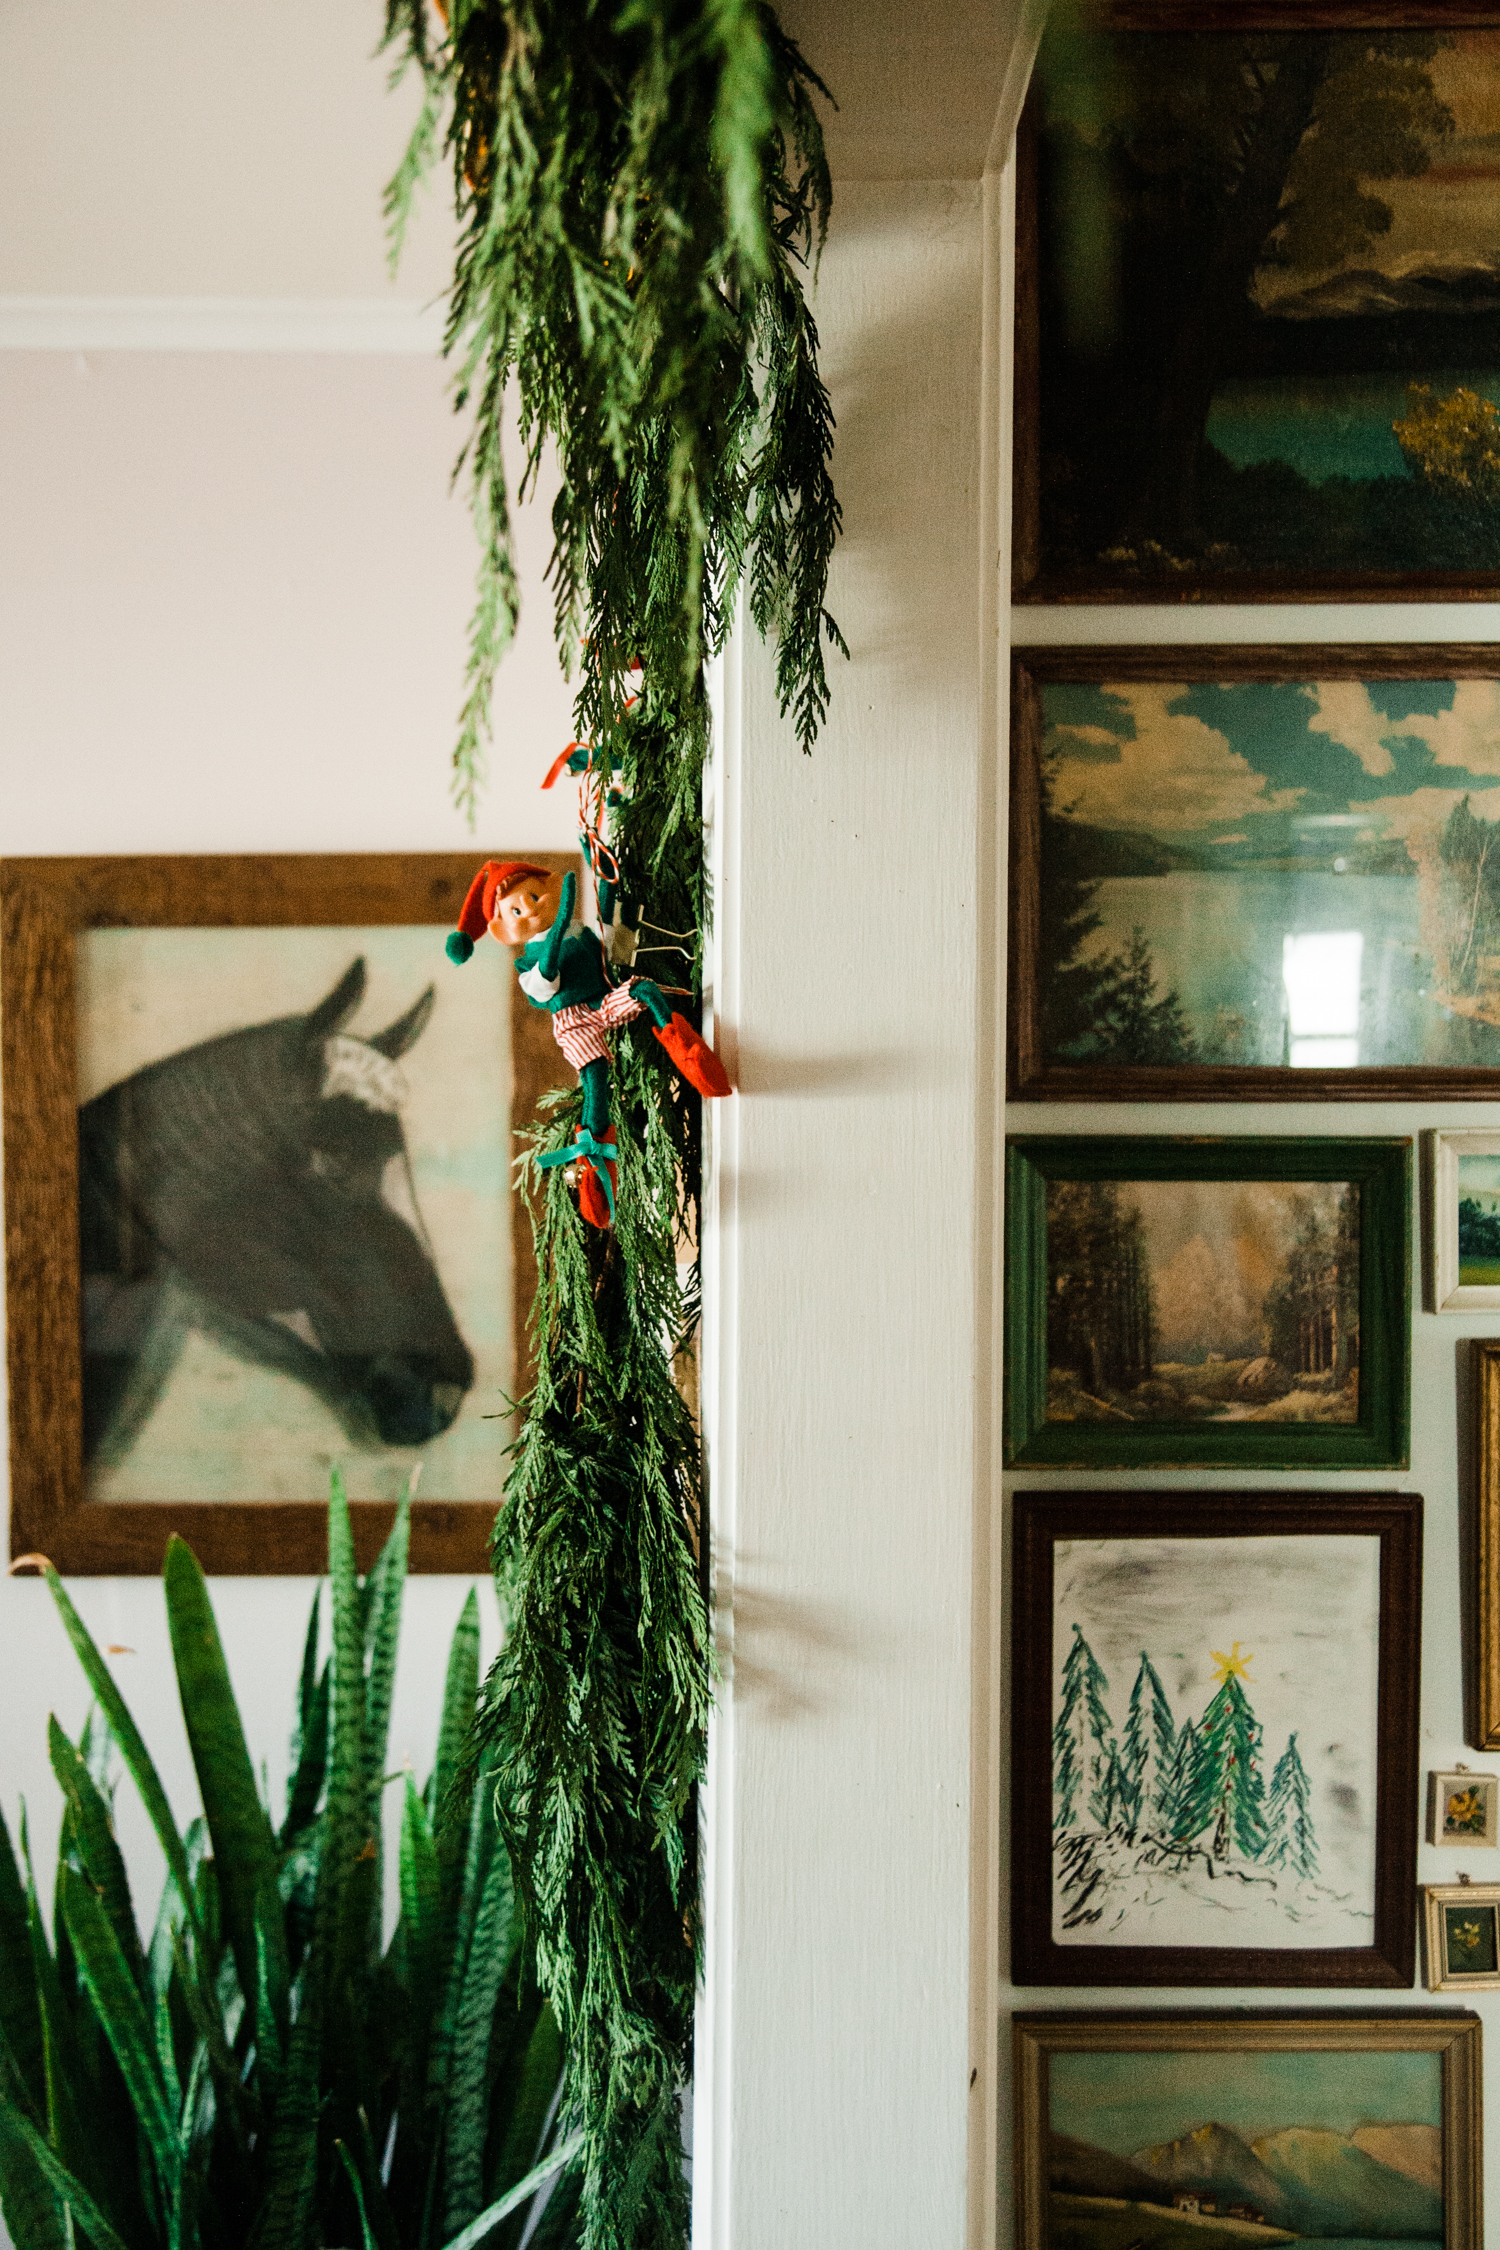 daly holiday home tour-26.jpg